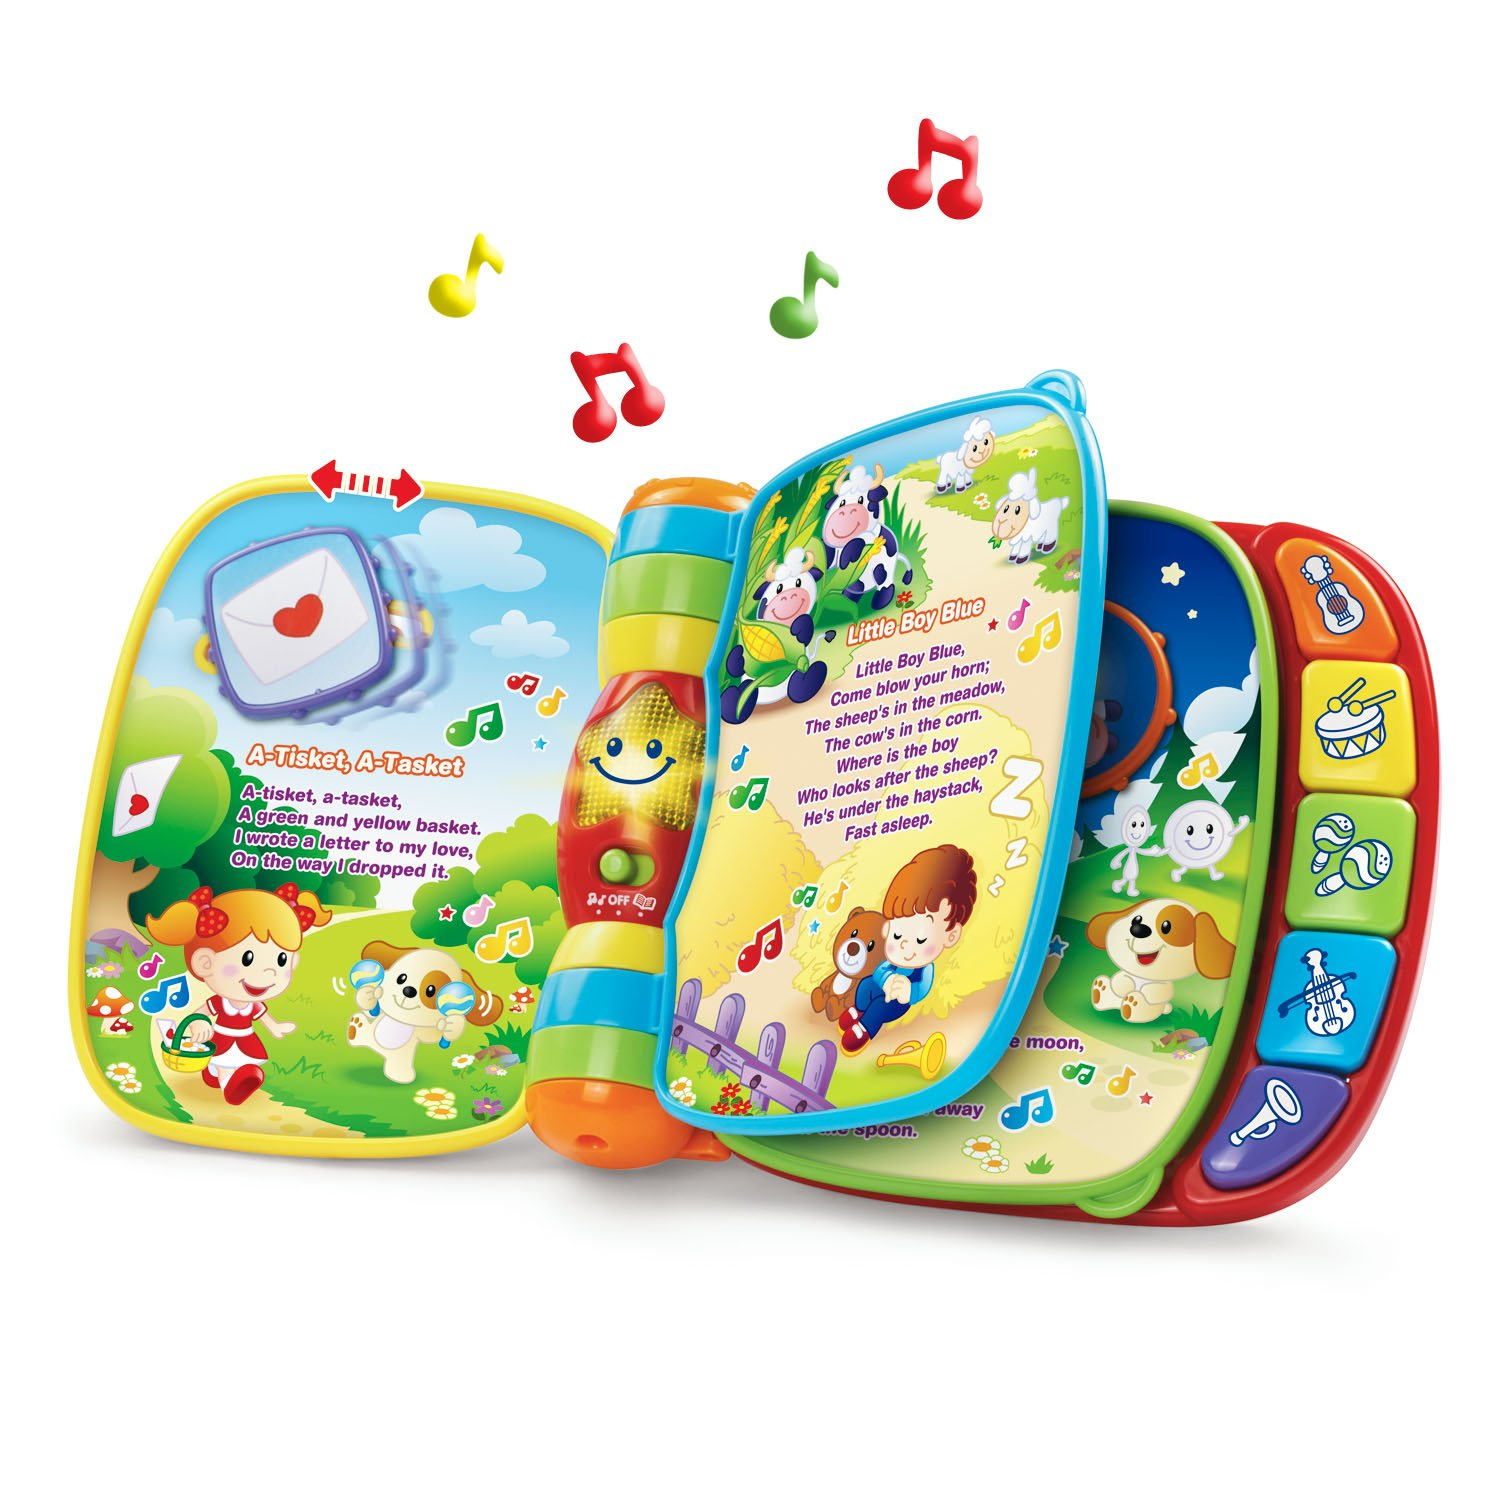 Vtech Baby Musical Rhymes Book Amazon Toys & Games